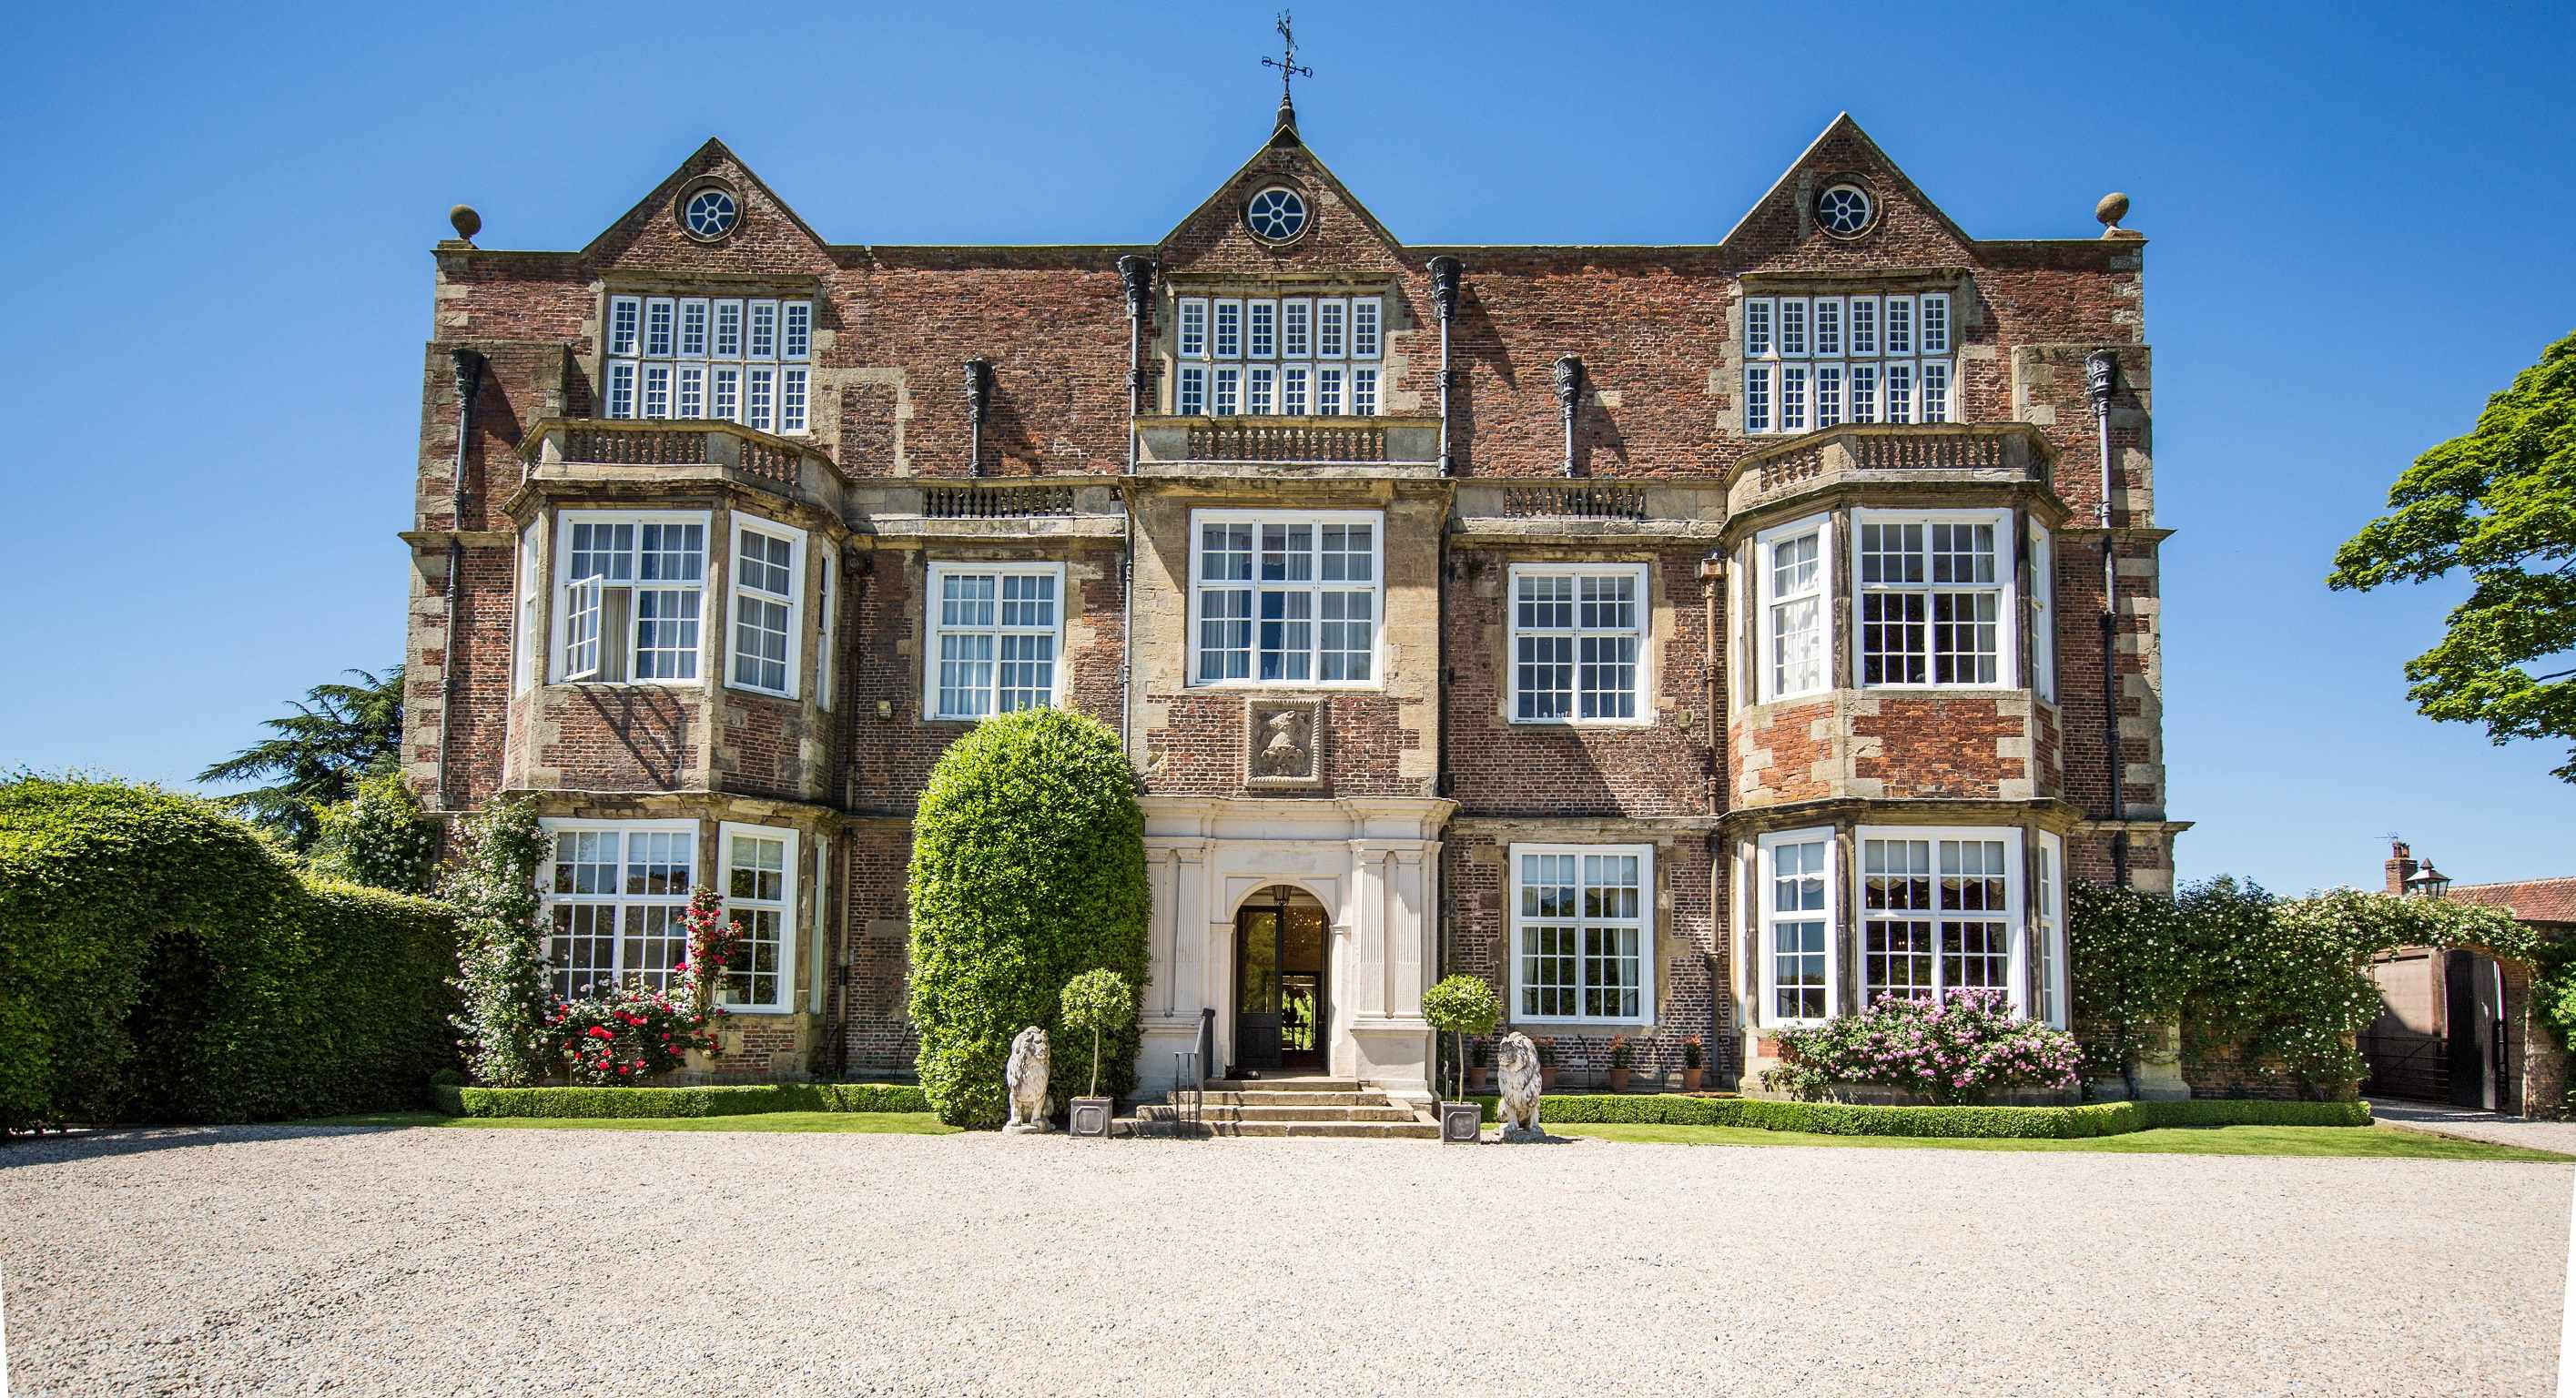 The exterior of Goldsborough Hall, Yorkshire. A striking Grade II listed building has a large driveway leading up to it with tress outside